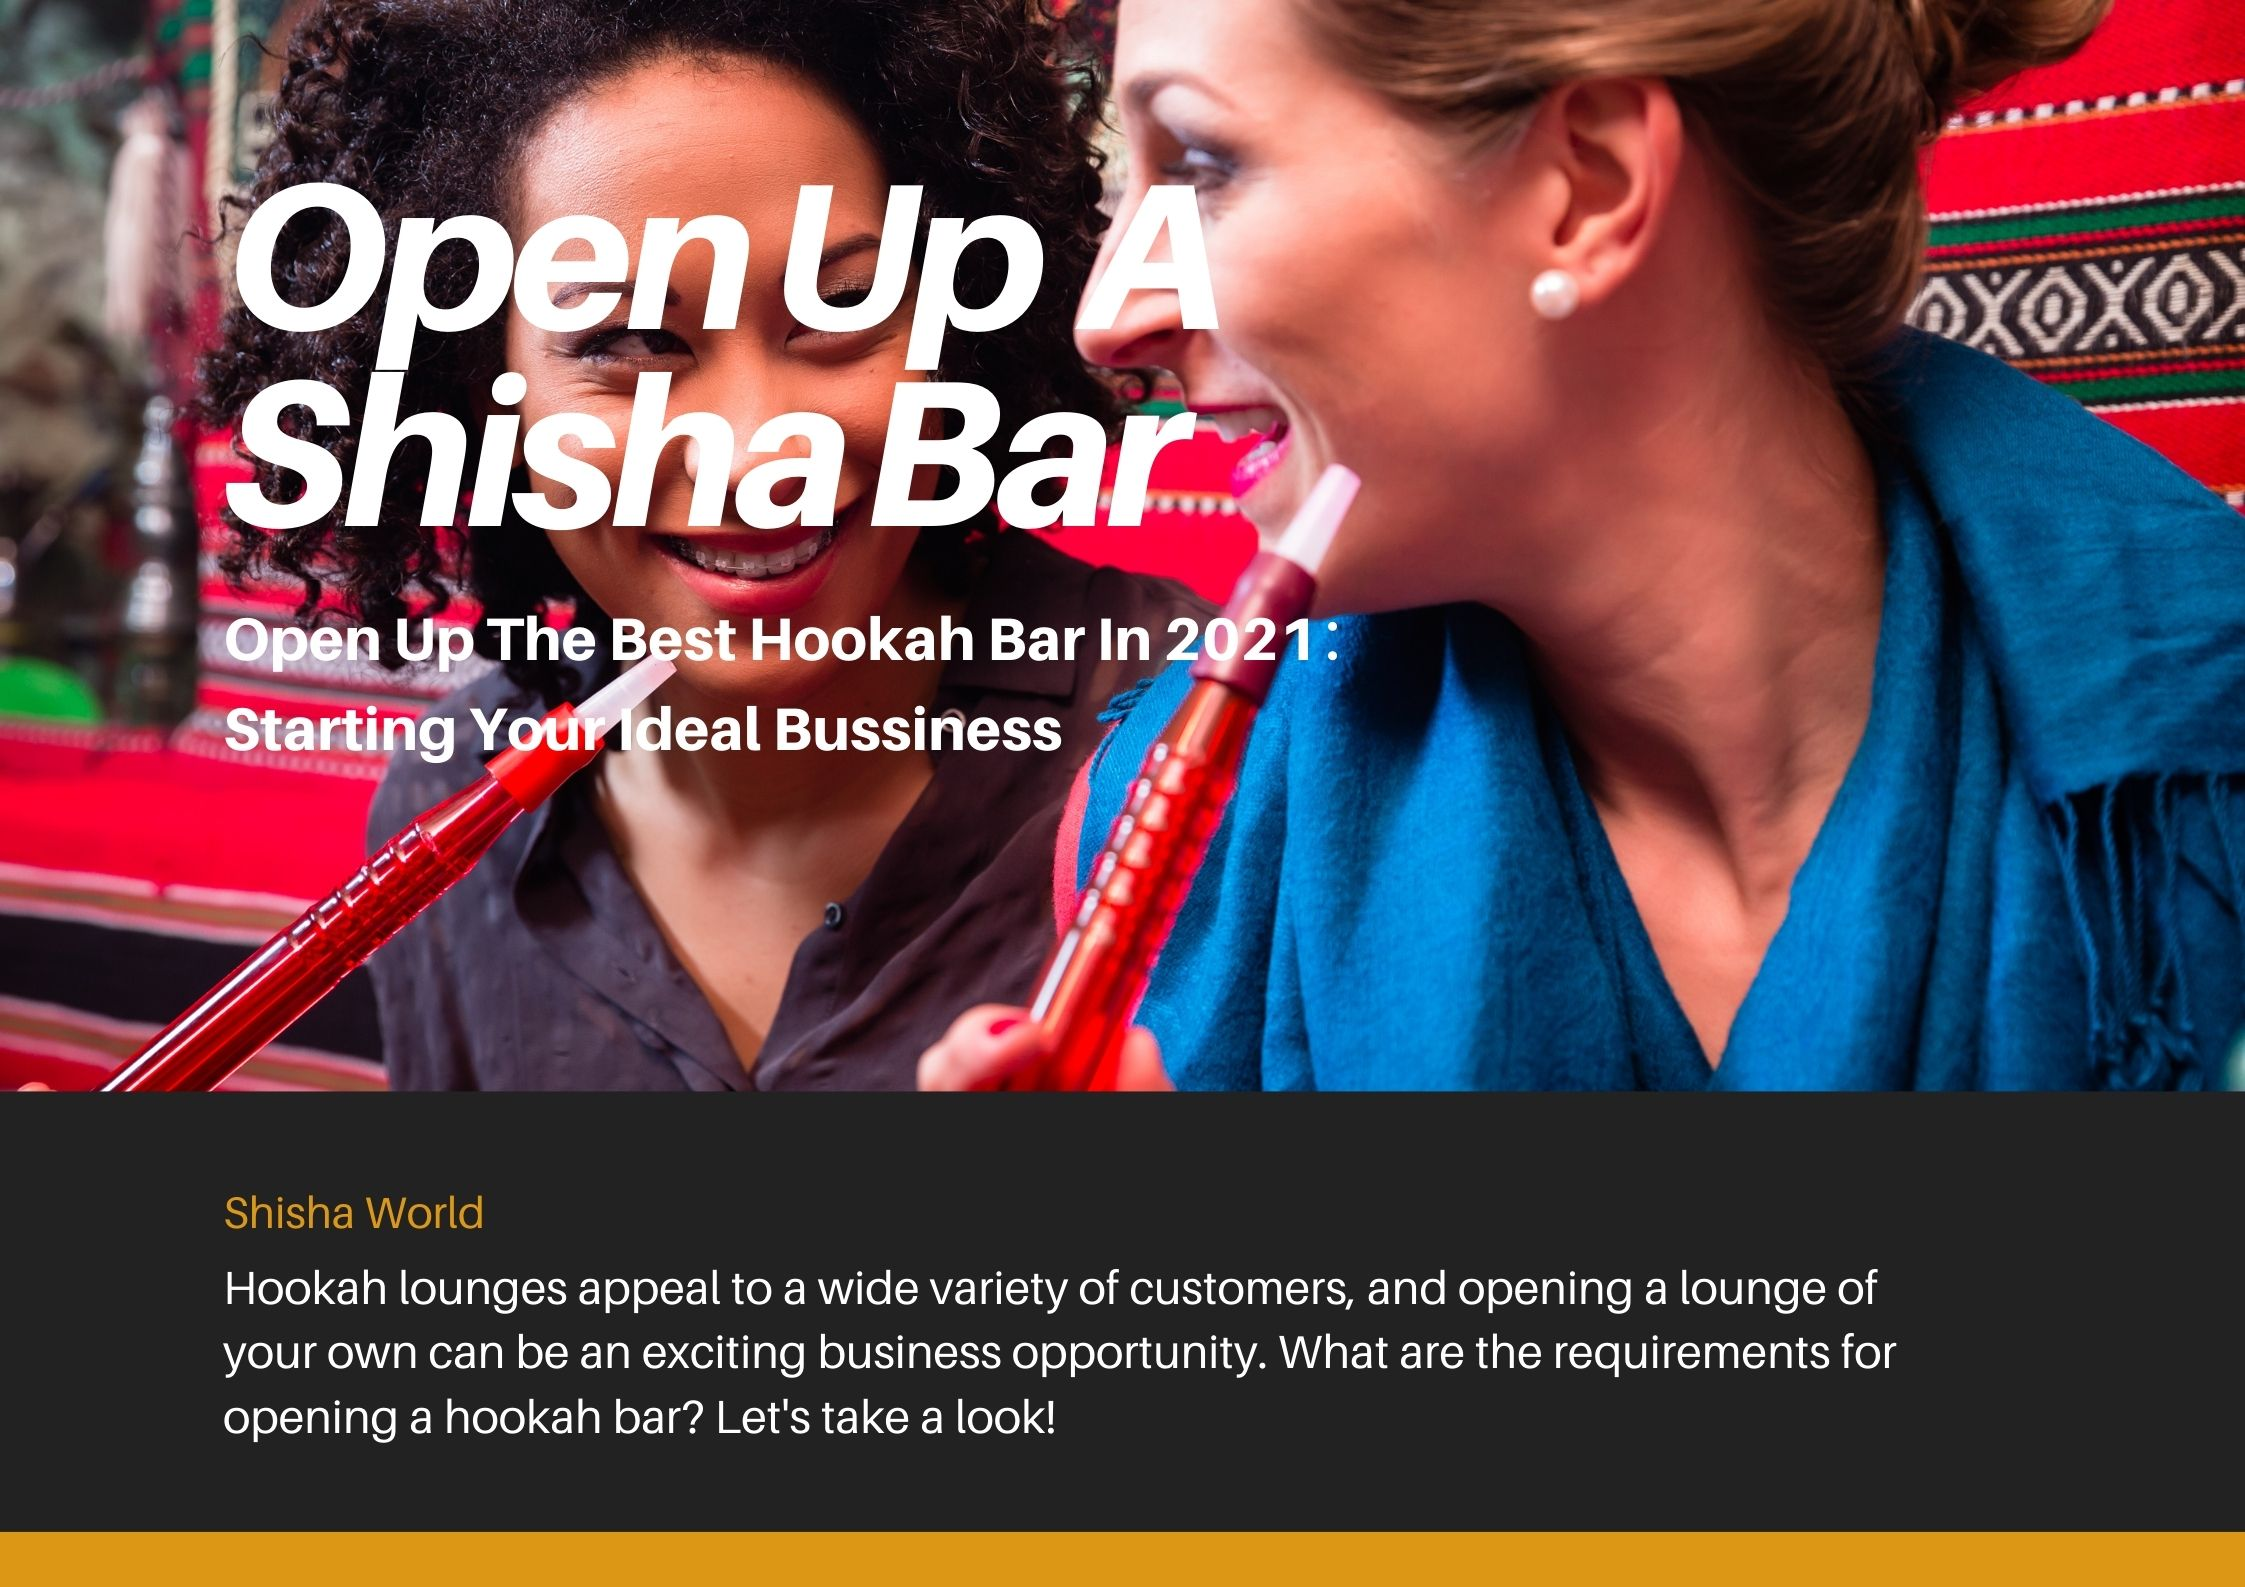 Open Up The Best Hookah Bar In 2021:Starting Your Ideal Bussiness